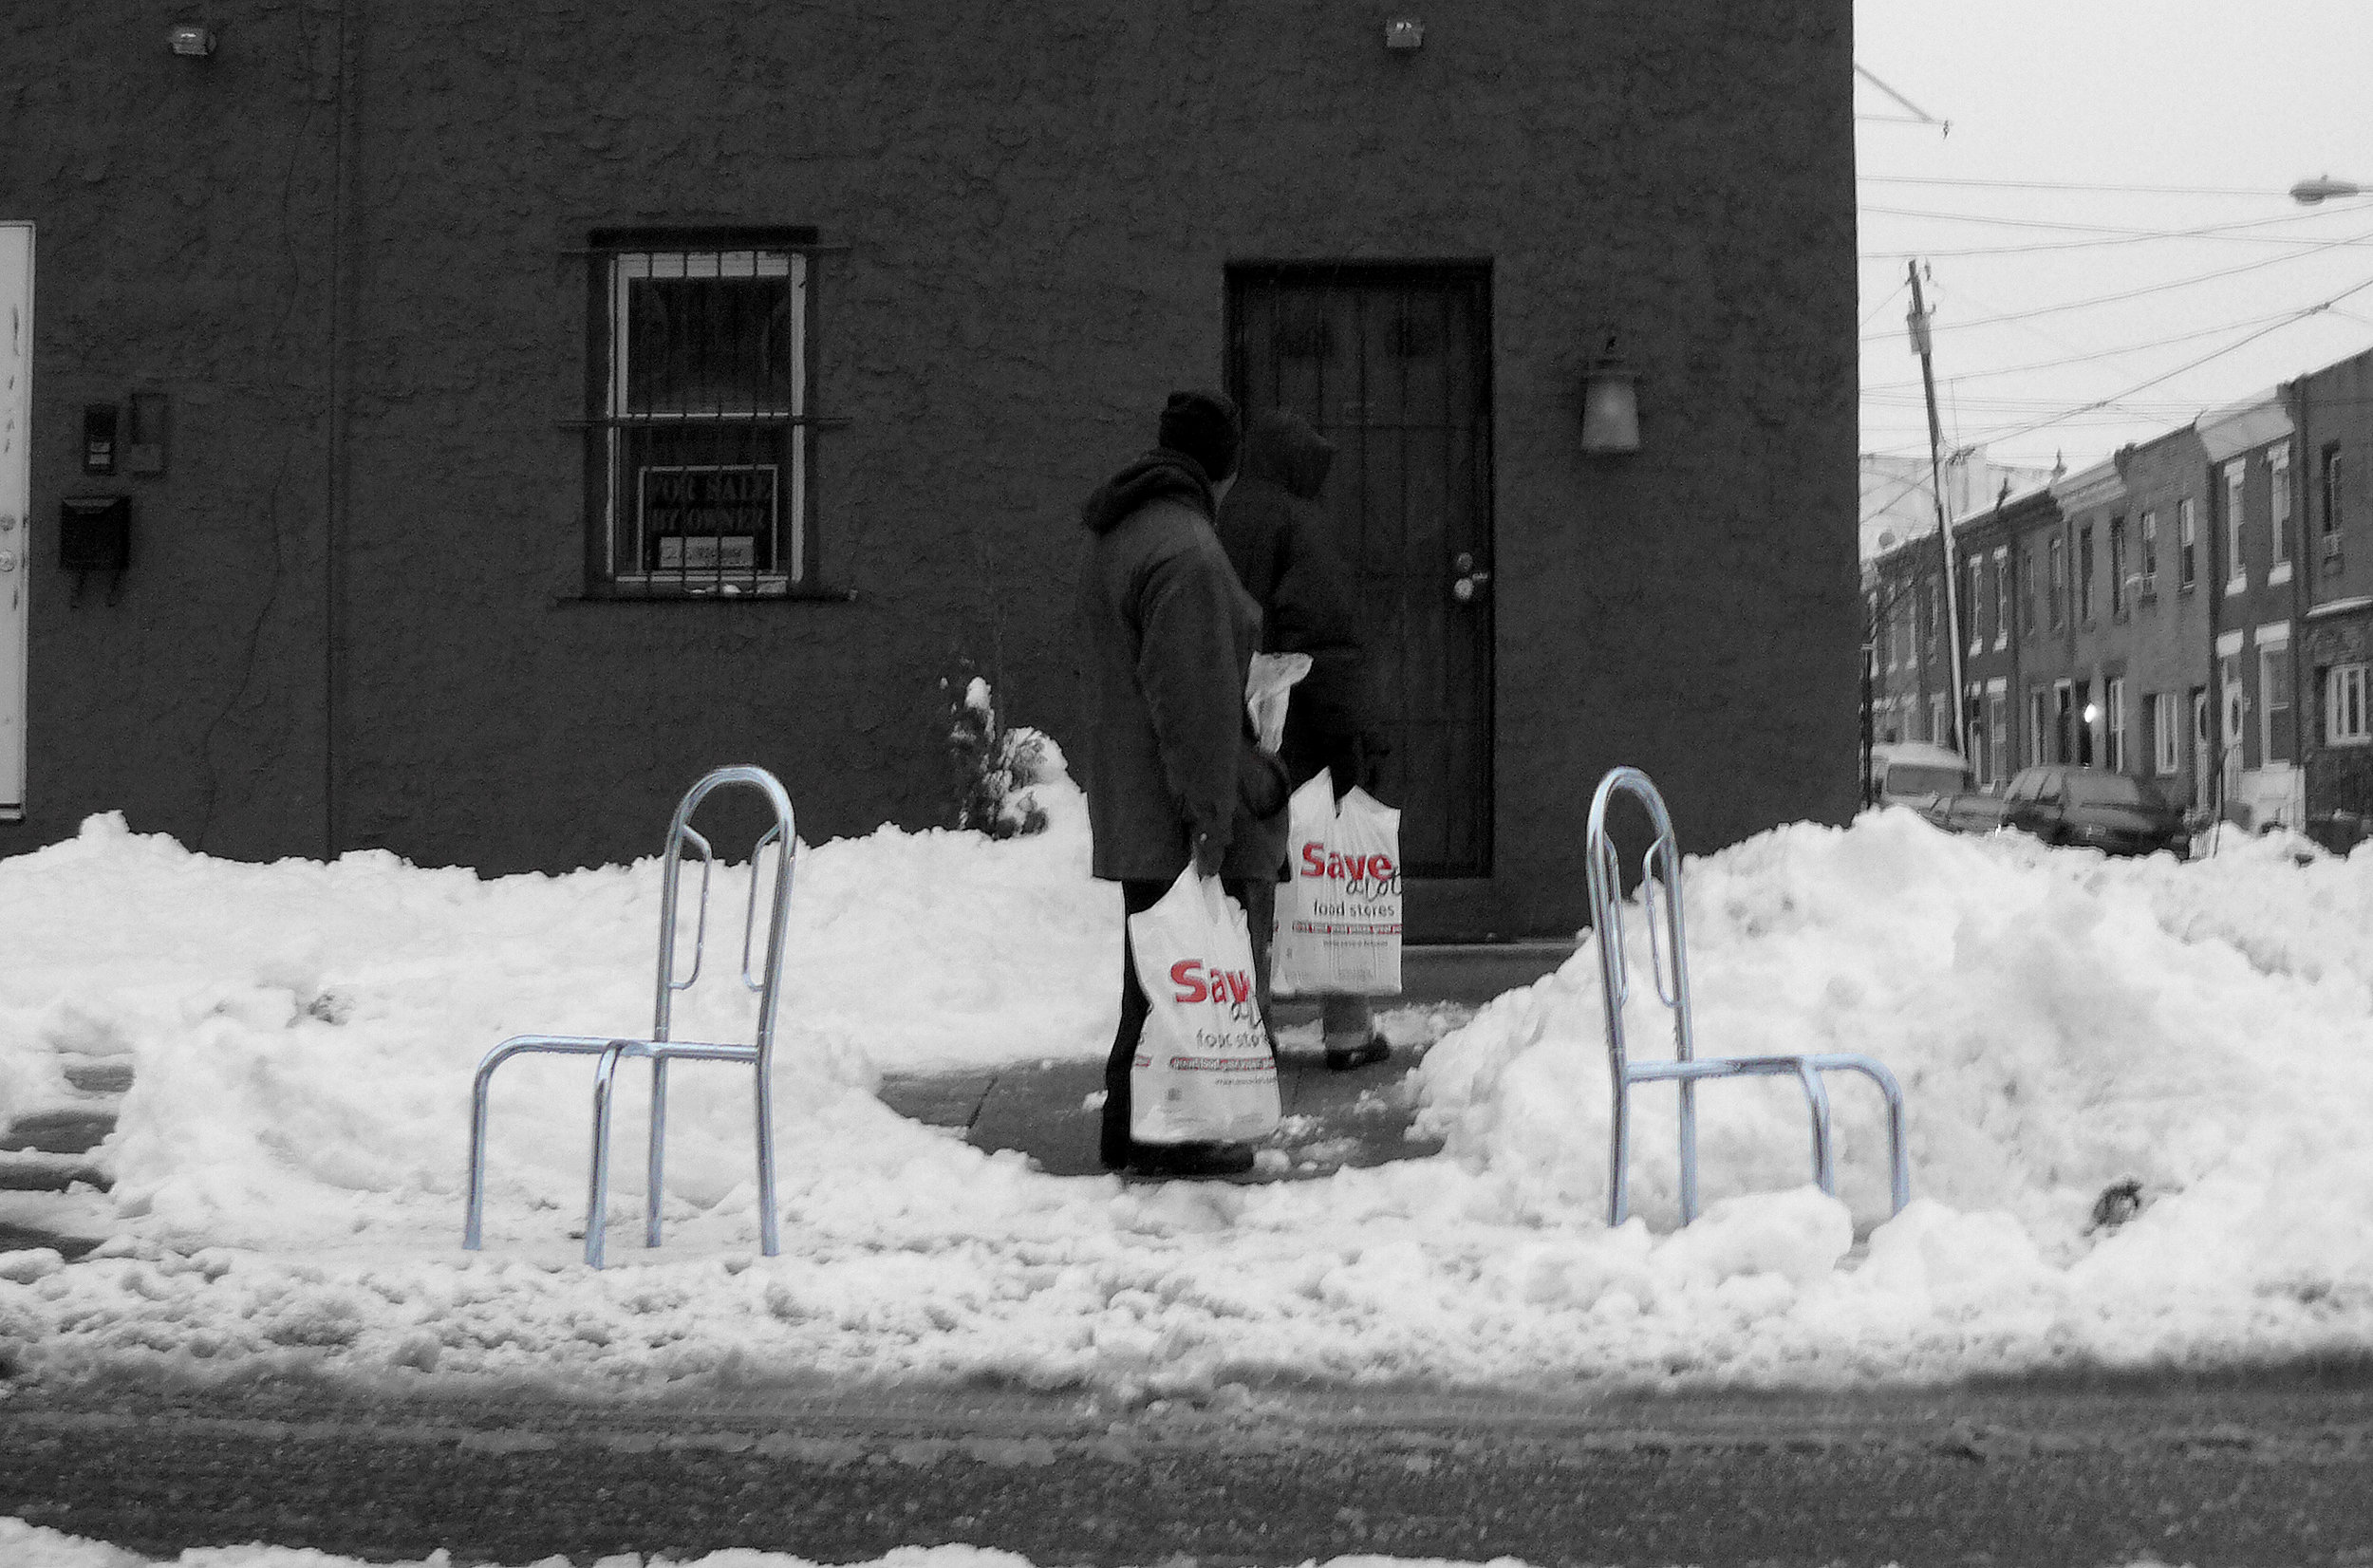 "sAVIES - After a particularly heavy snowstorm, the clean up begins. Parked vehicles on the street are are often plowed into their spots, thereby compounding shoveling out. Much effort is oftenindividually expended to release one's vehicle from its frozen prison. Therefore, once the spot is cleared, that spot is often believed by the shoveler to be personally ""owned"" until the snow on the street has melted away. Random furniture, concrete filled buckets and unwanted bric a brac are brought out to ""save"" the spot. Signs are often posted with threatening, expletive-laden scrawl. Fights have broken out over these cleared spots, and in Boston last year a man was shot. Evidently, clearing a spot altruistically, for any neighbor to benefit, is not something taught in Sunday school. Instead, marking one's temporary territory by calling ""Savesies"" is the lesson learned.Click on the image for more"